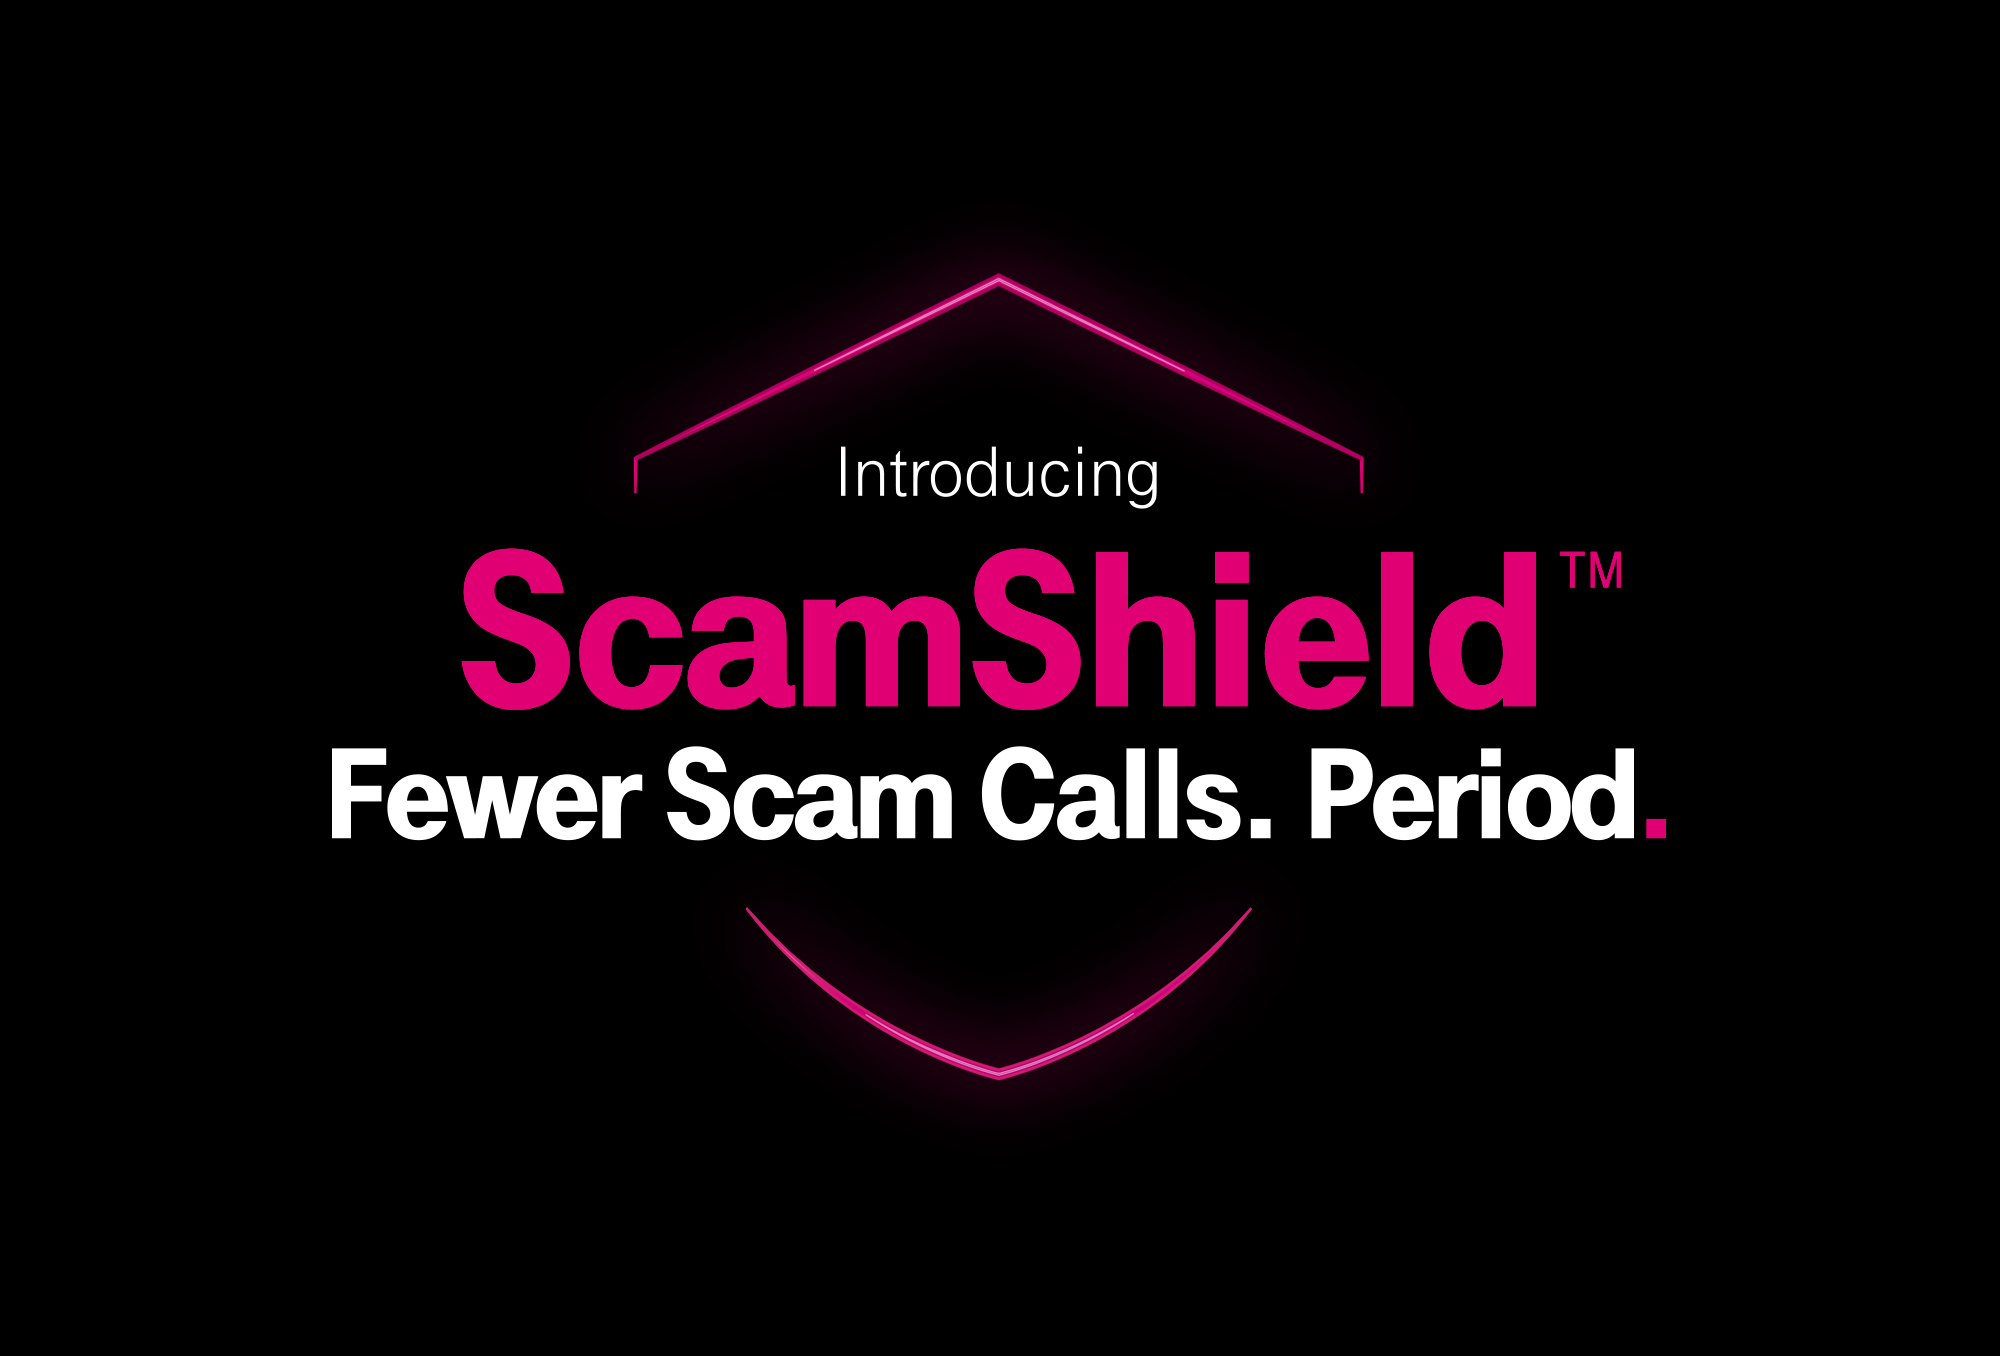 T Mobile Scam Shield App  What is it?